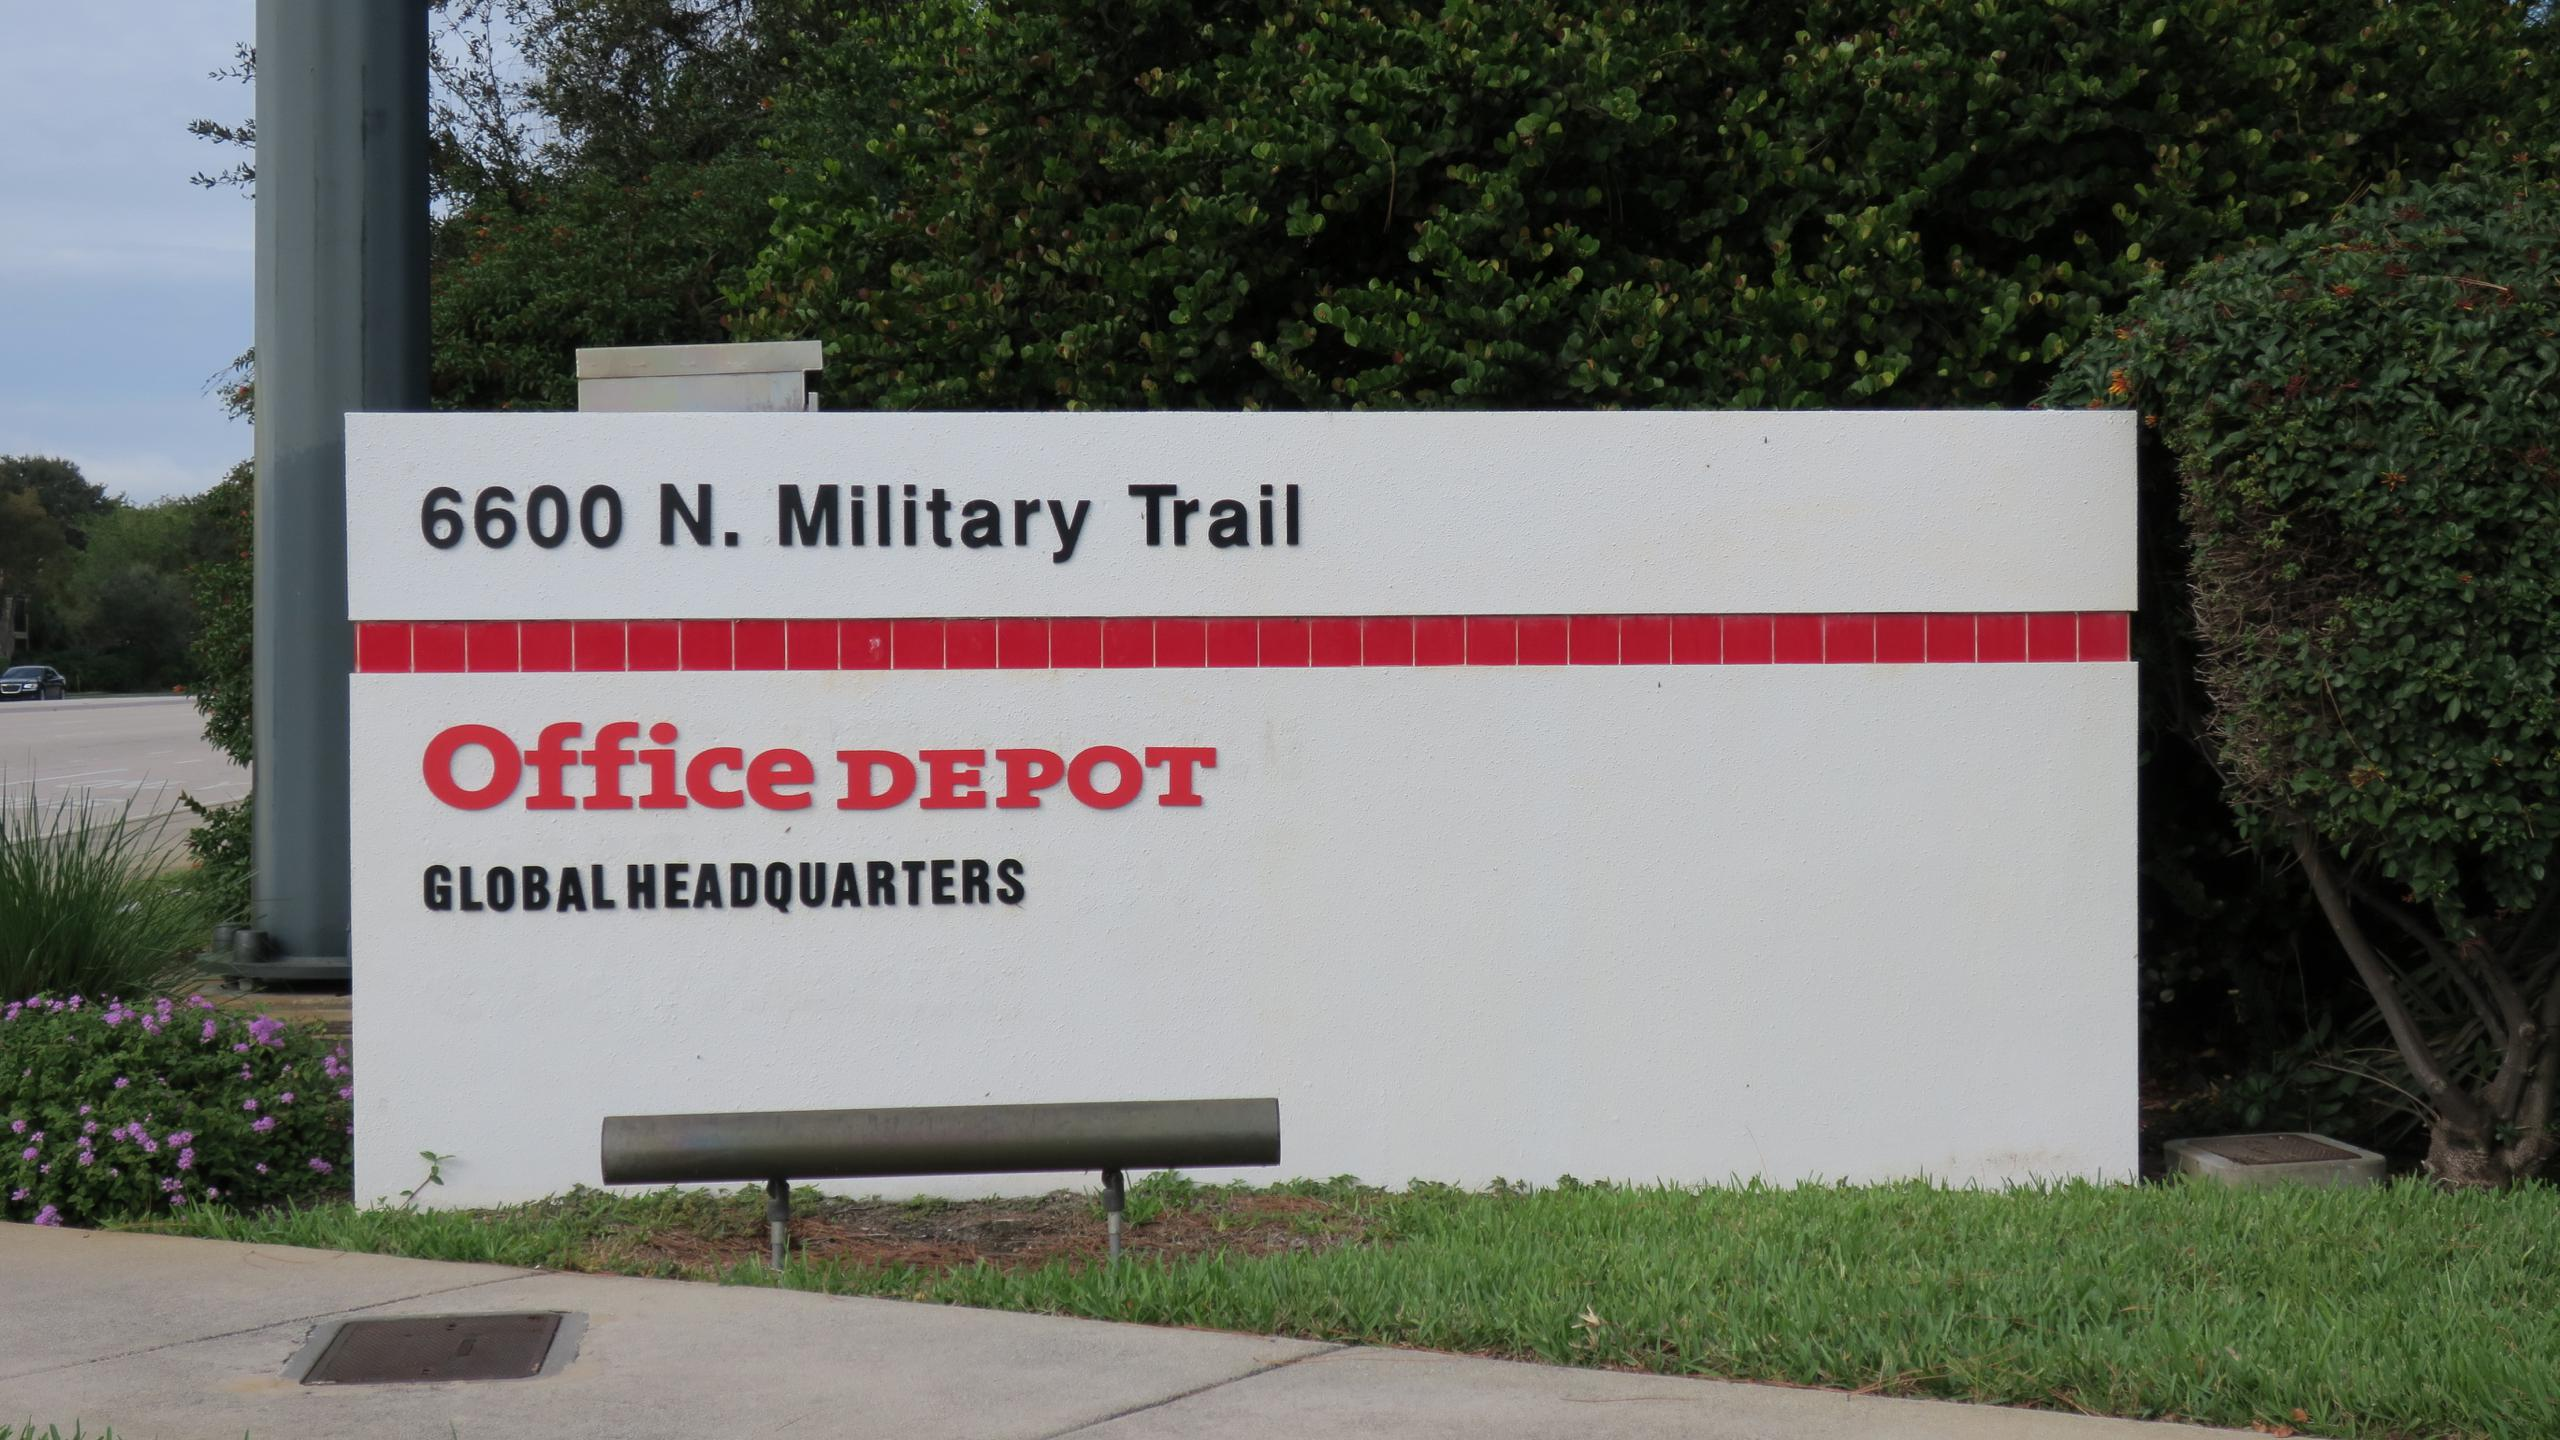 Entrance to Office Depot's corporate headquarters in Boca Raton, Florida.